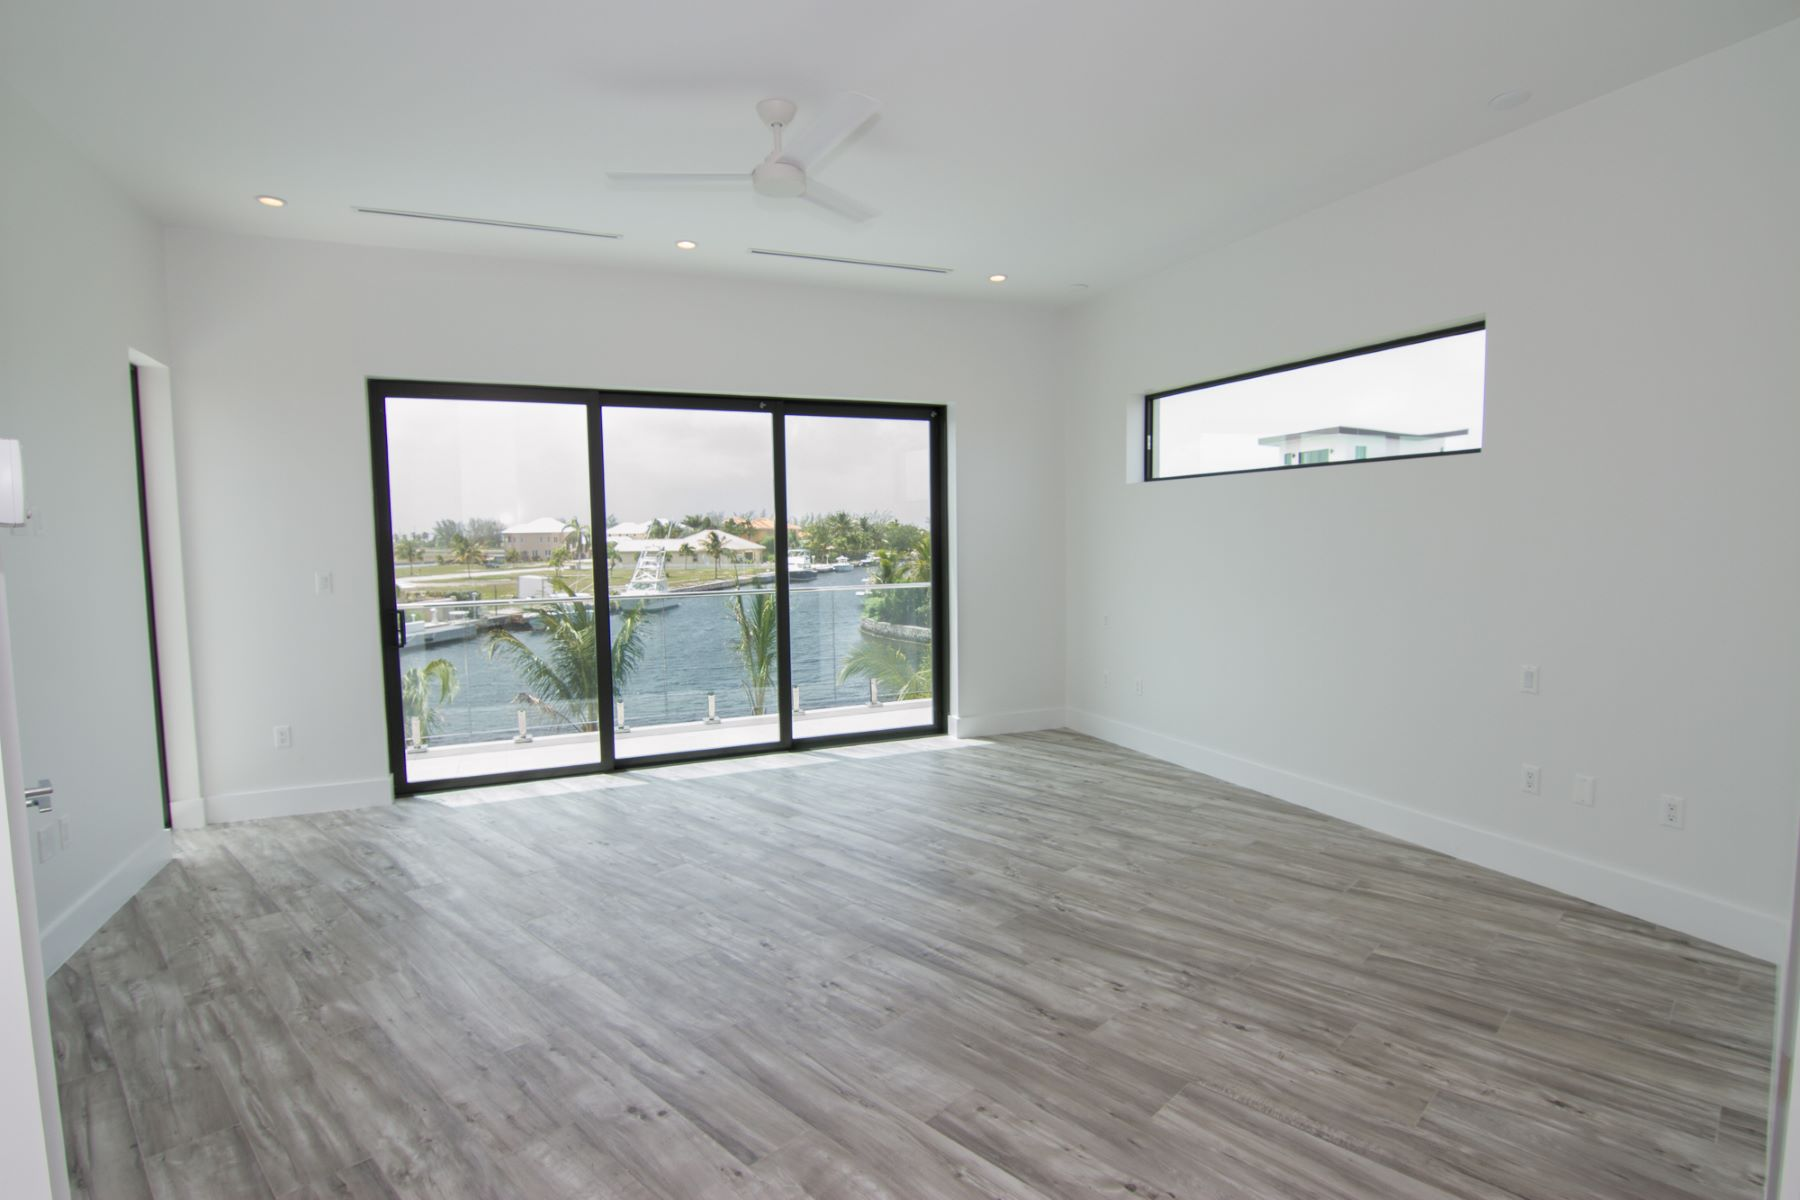 Additional photo for property listing at HQ, Hoya Quay Contemporary Crystal Harbour Home 水景港, 大开曼岛 开曼群岛